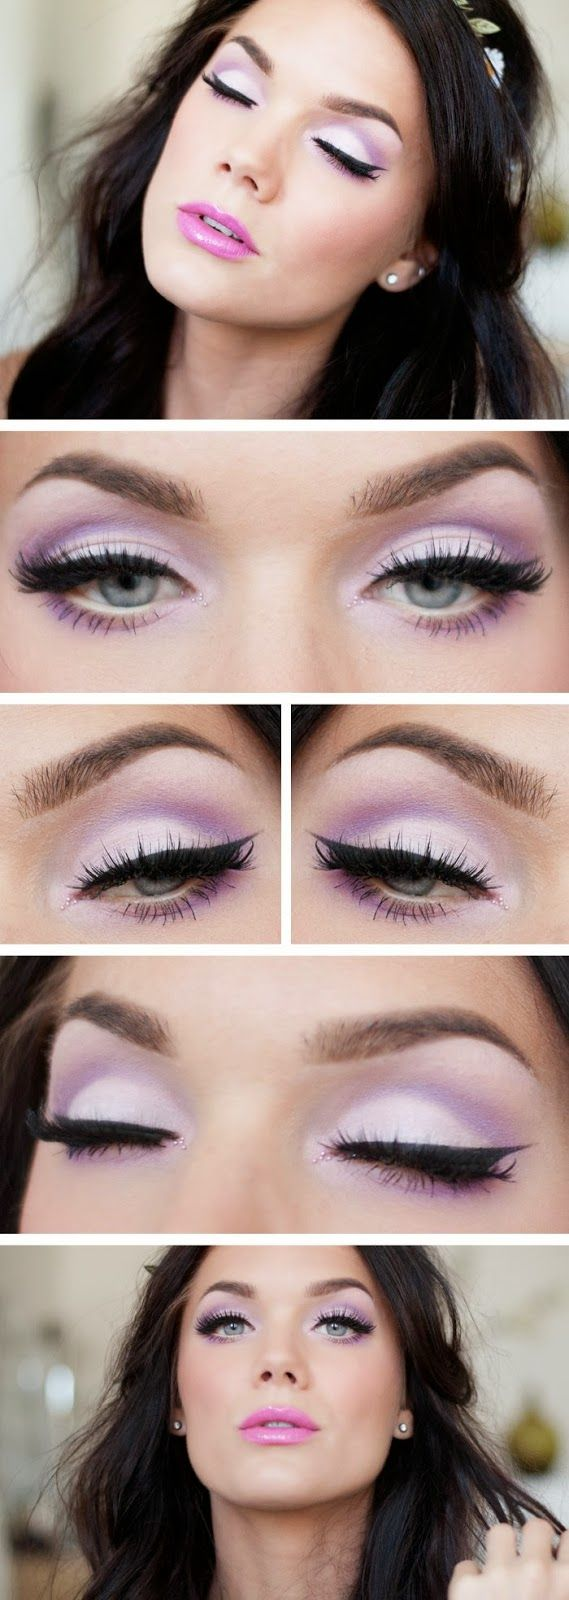 best makeup images on pinterest beauty makeup makeup eyes and